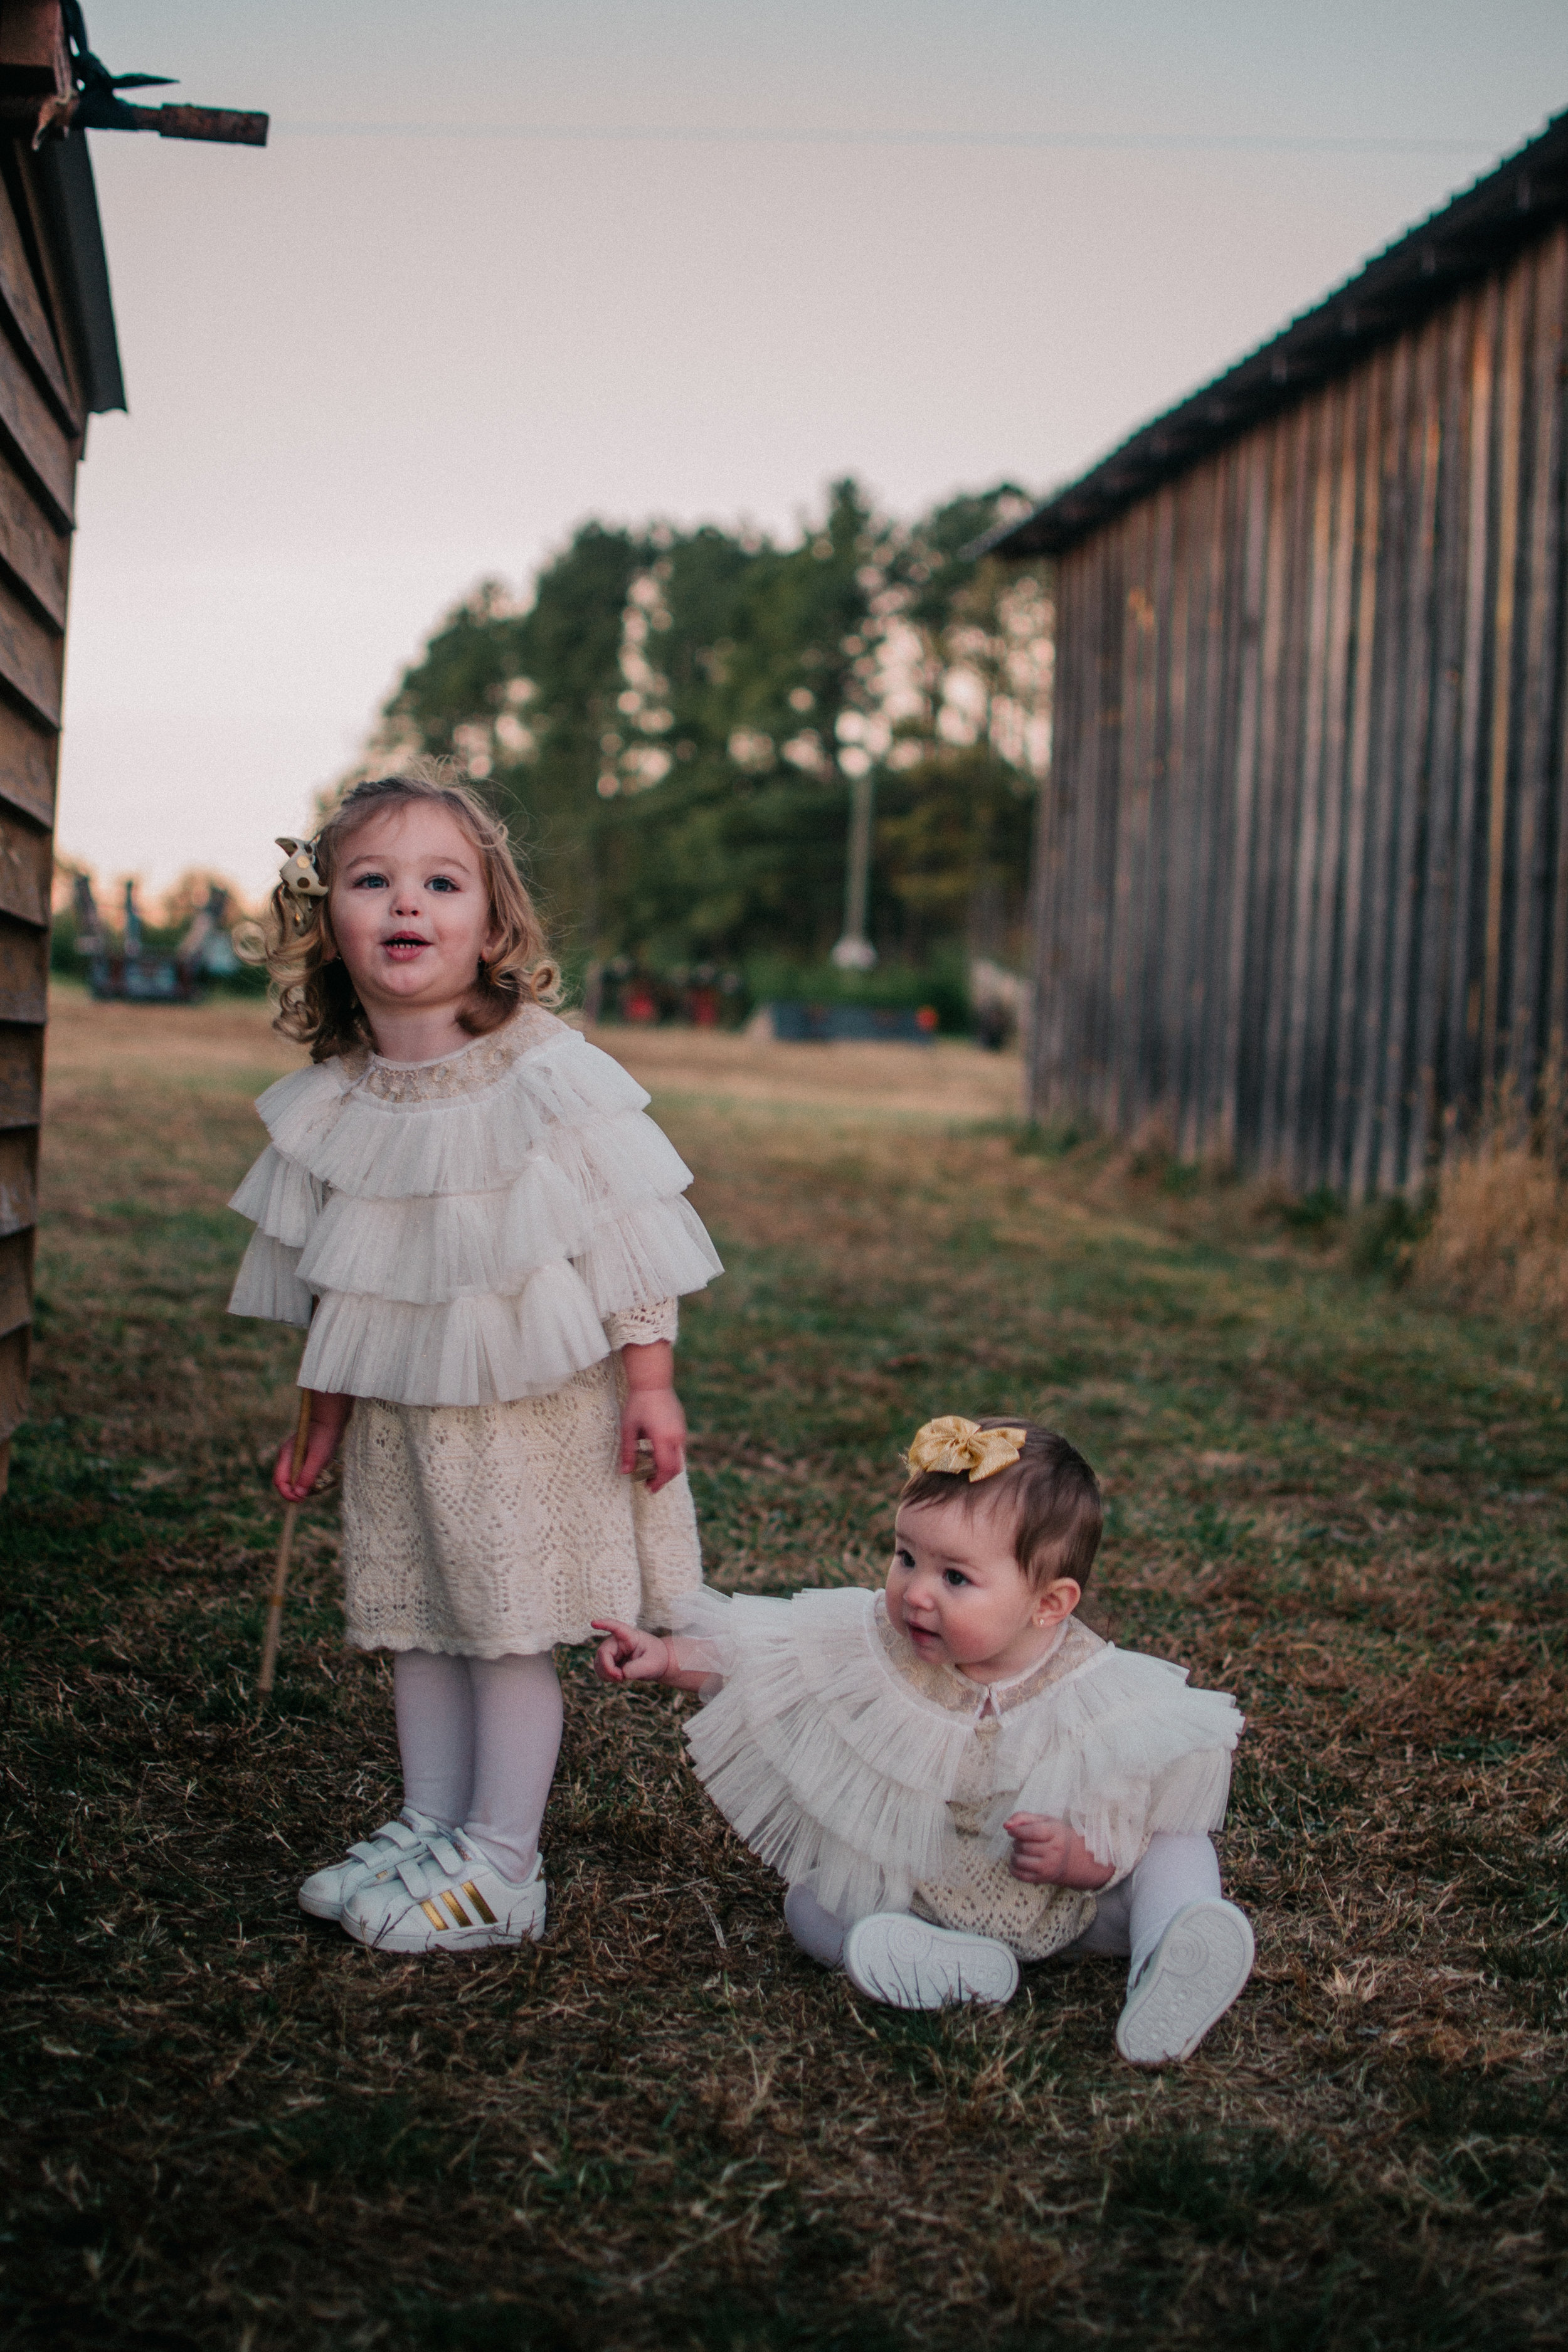 Children Portraits $150 - Phone Consultation2 hours of photographyCopyrights of all imagesCD of beautifully Edited photos Online Gallery to view your photos